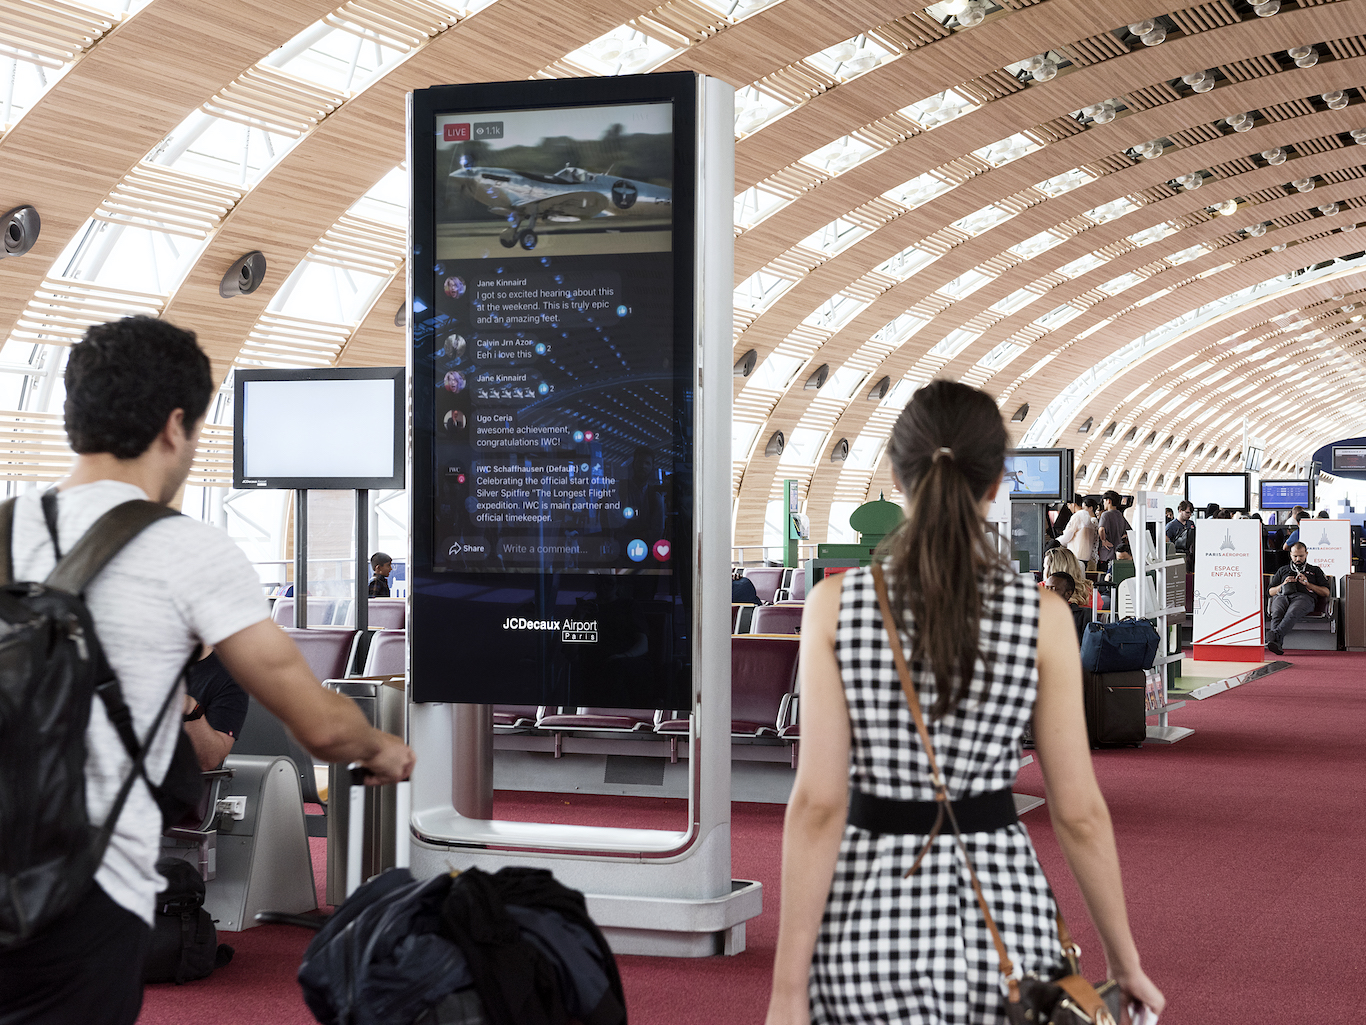 JCDecaux Airport